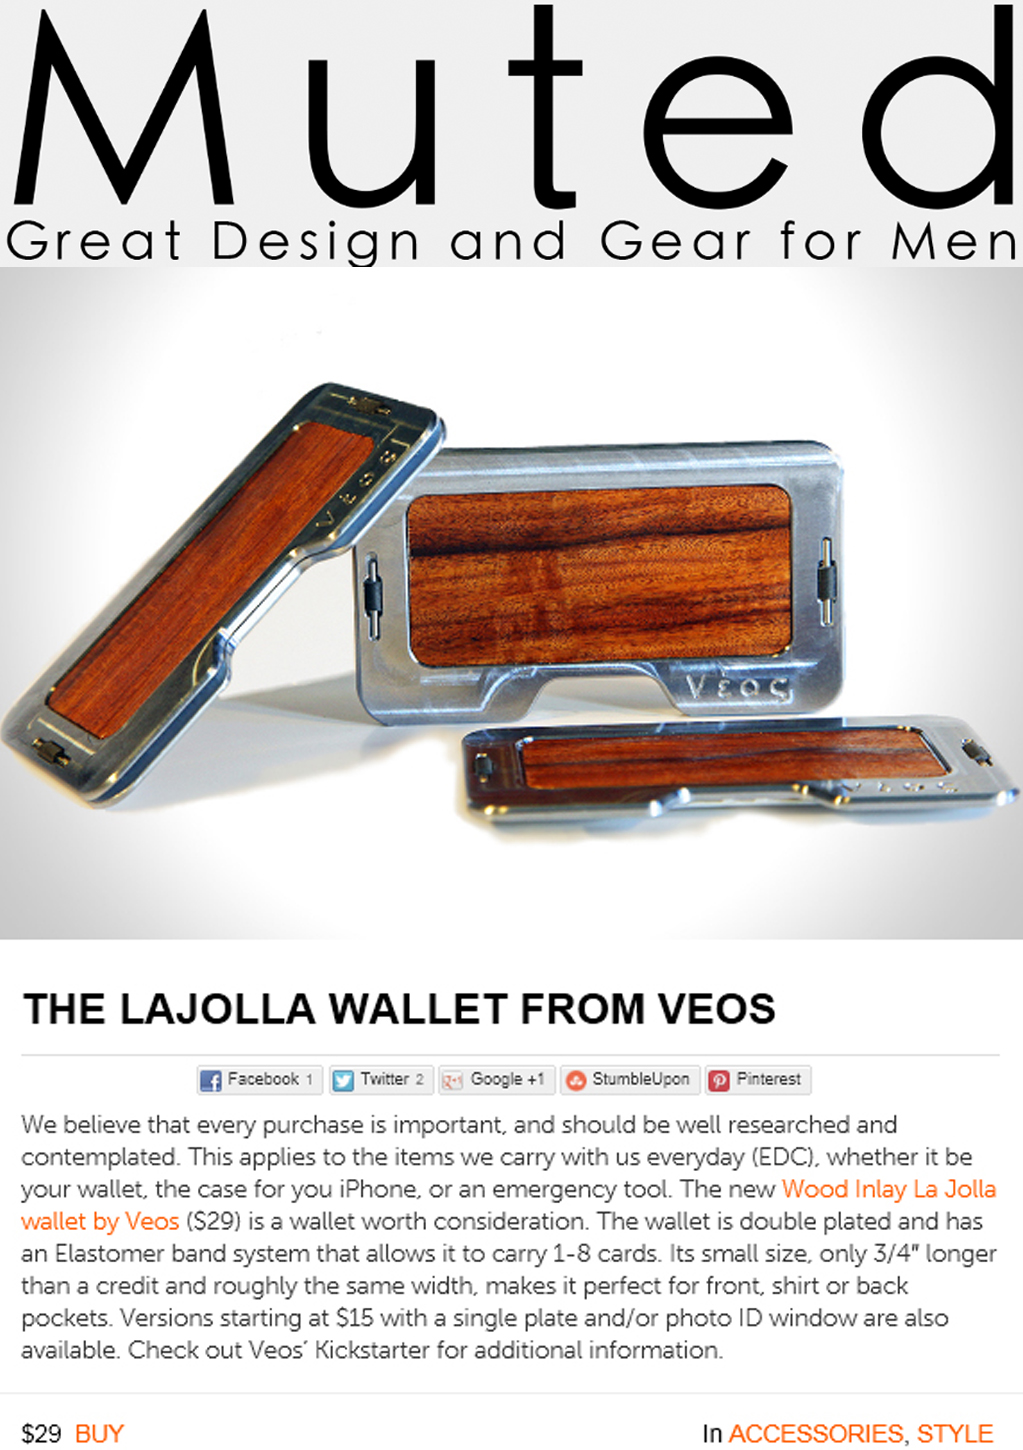 LaJolla Wallets at Muted.com